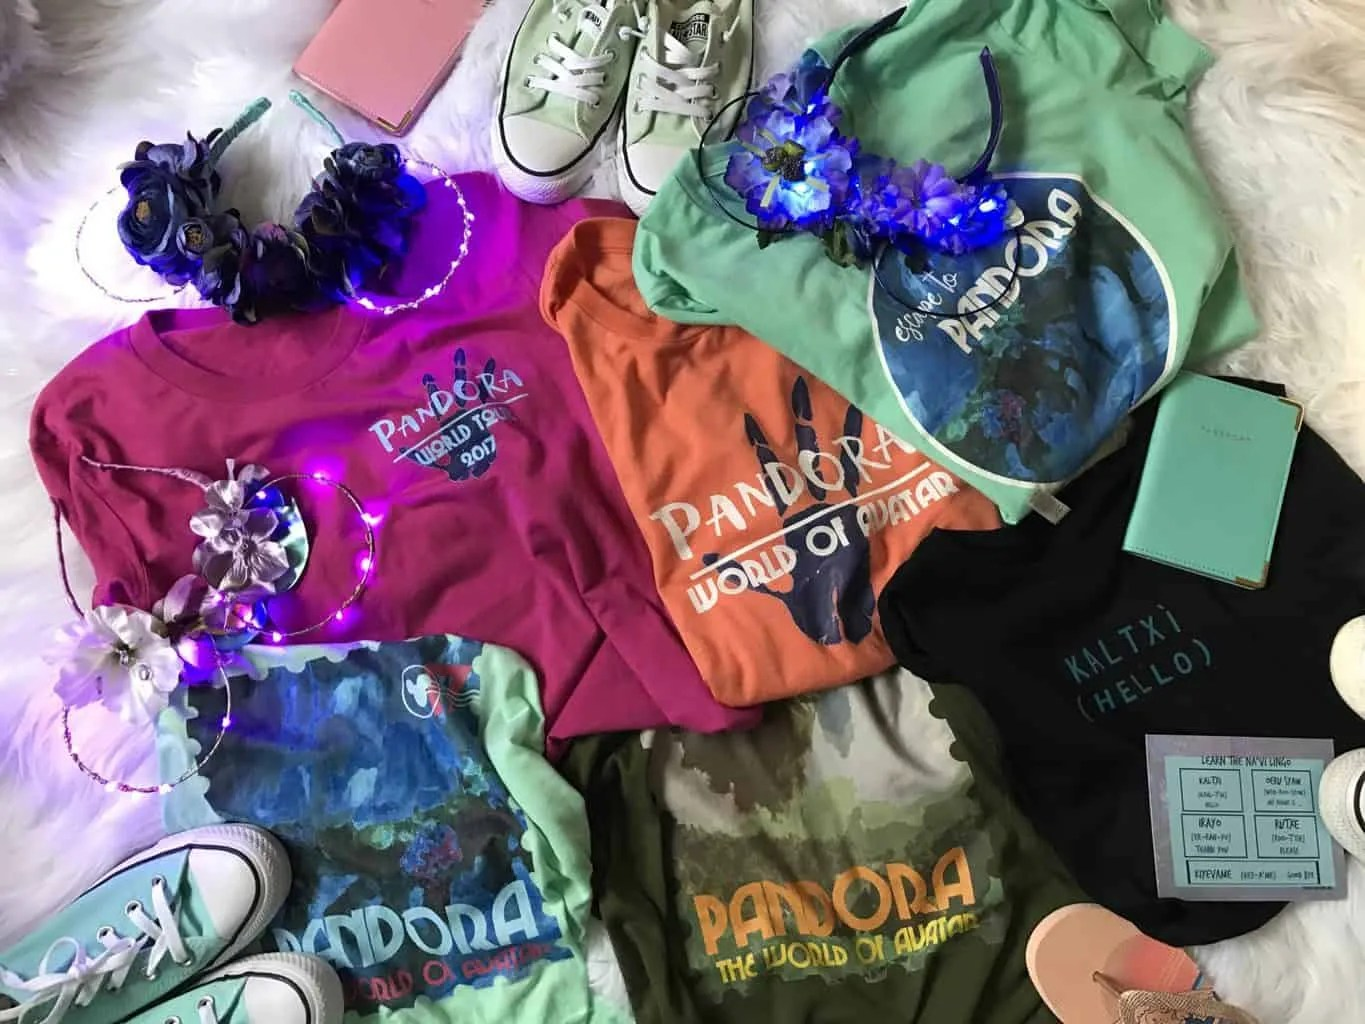 Walt Disney World's Pandora World of Avatar Merch